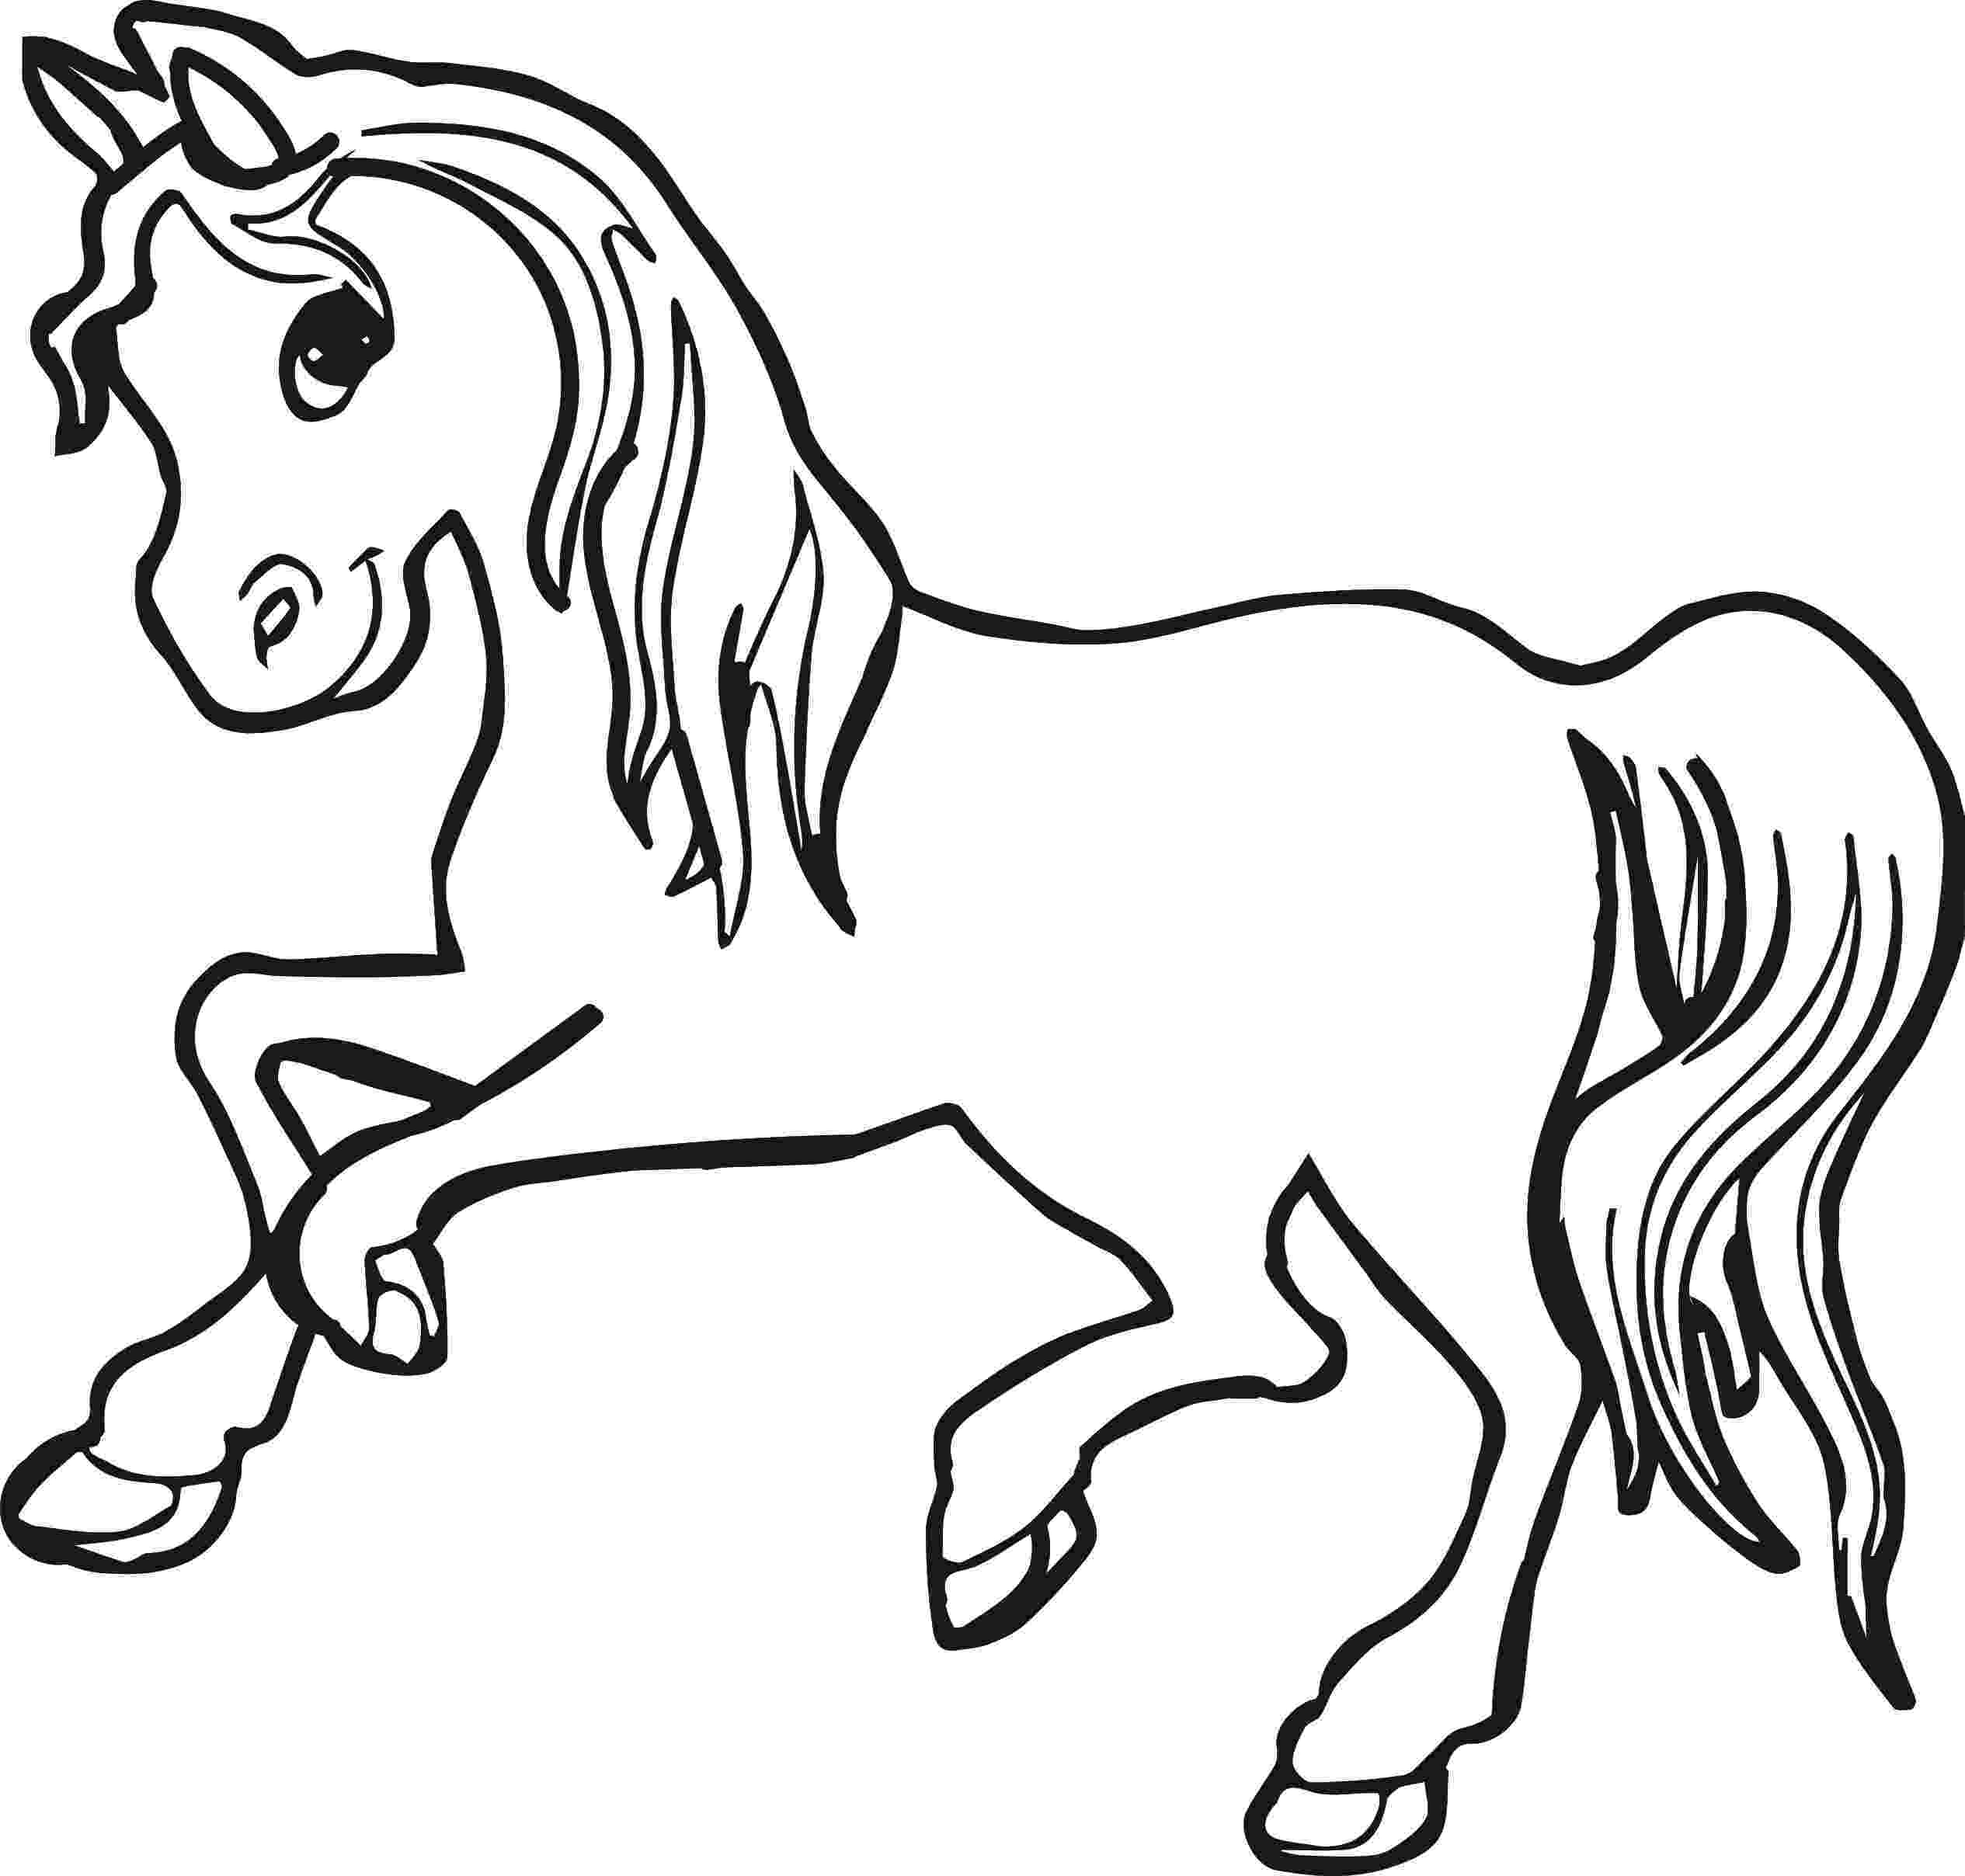 free coloring pictures of horses 30 best horse coloring pages ideas we need fun of horses coloring free pictures